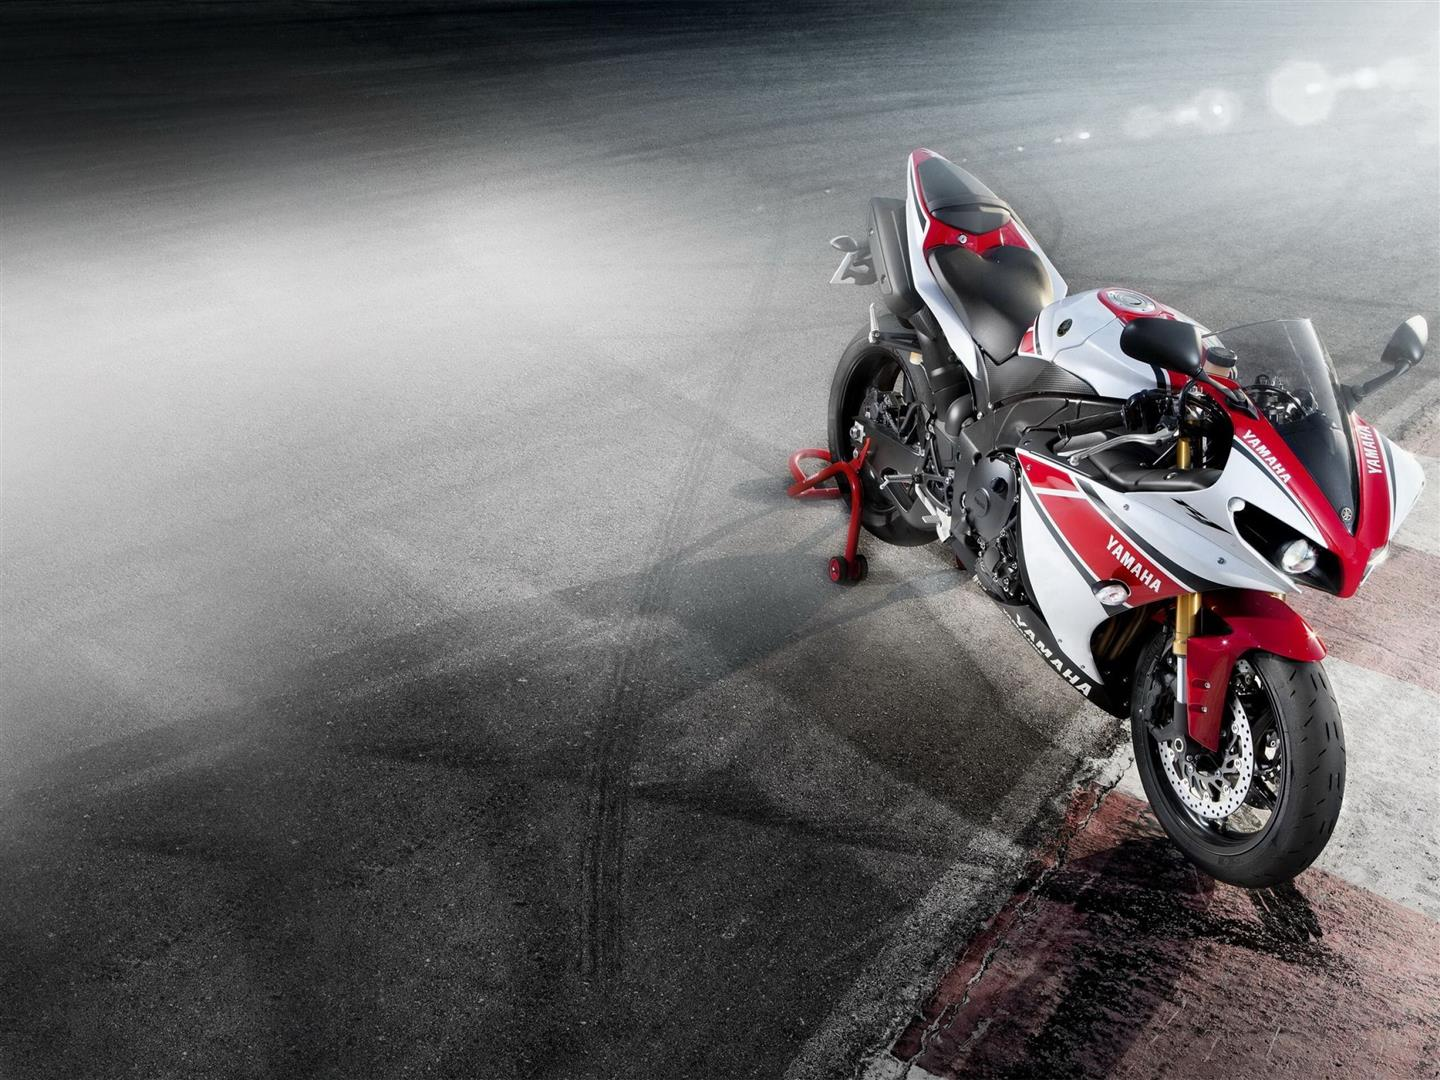 1440x1080 Yamaha Yzf R1 Bike HD Photo